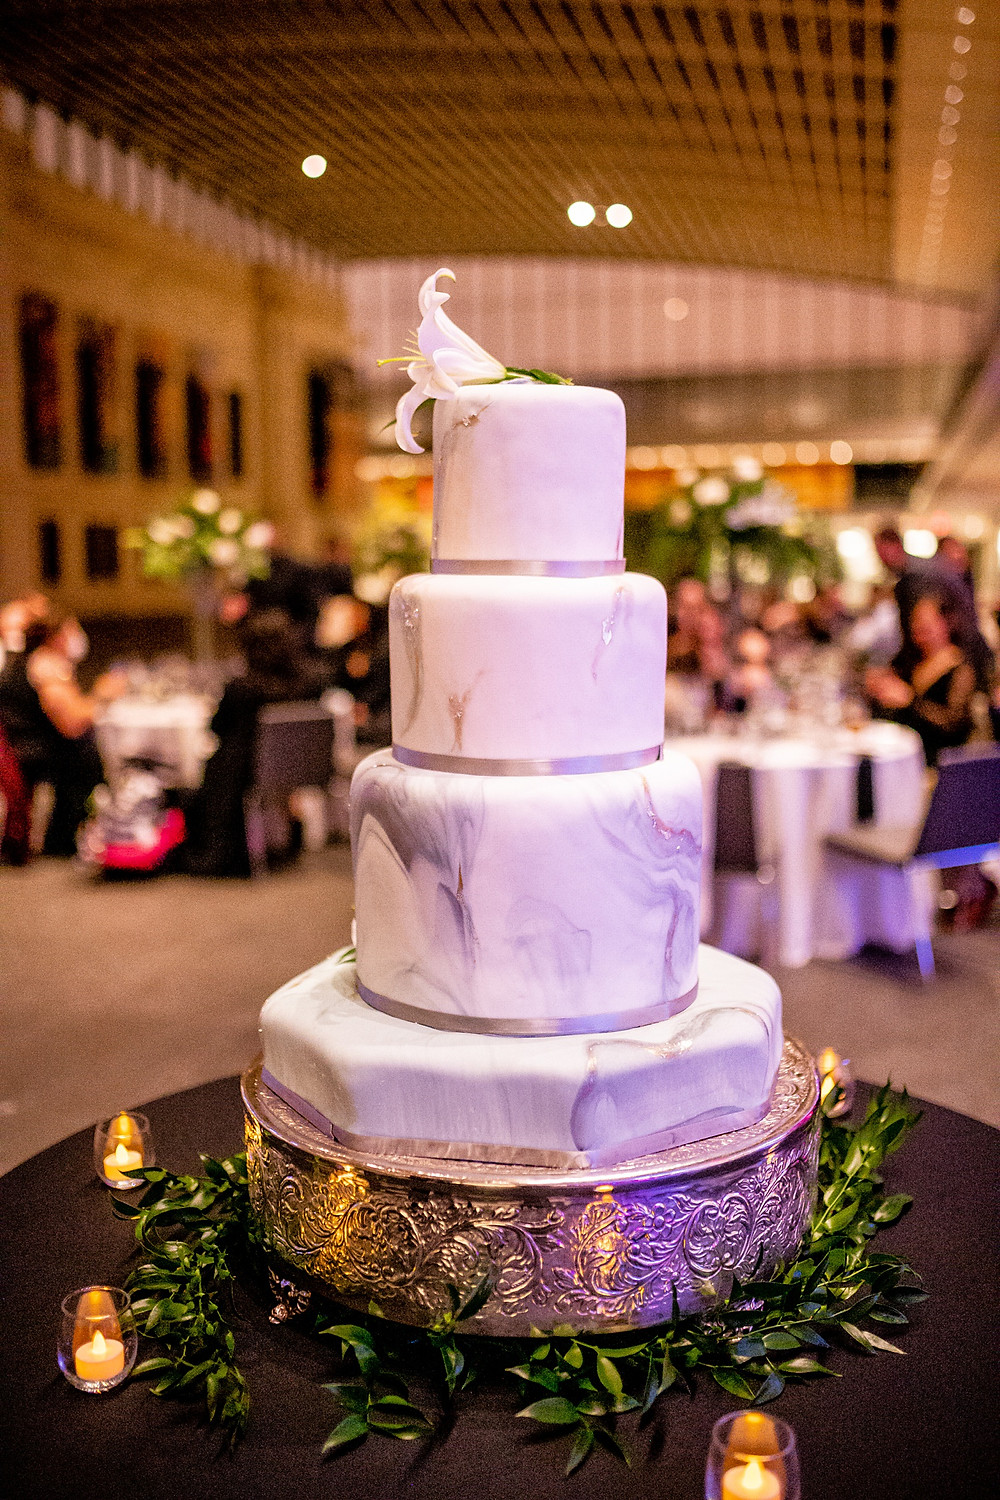 baking by pat hoose wedding cake at the cleveland museum of art wedding reception